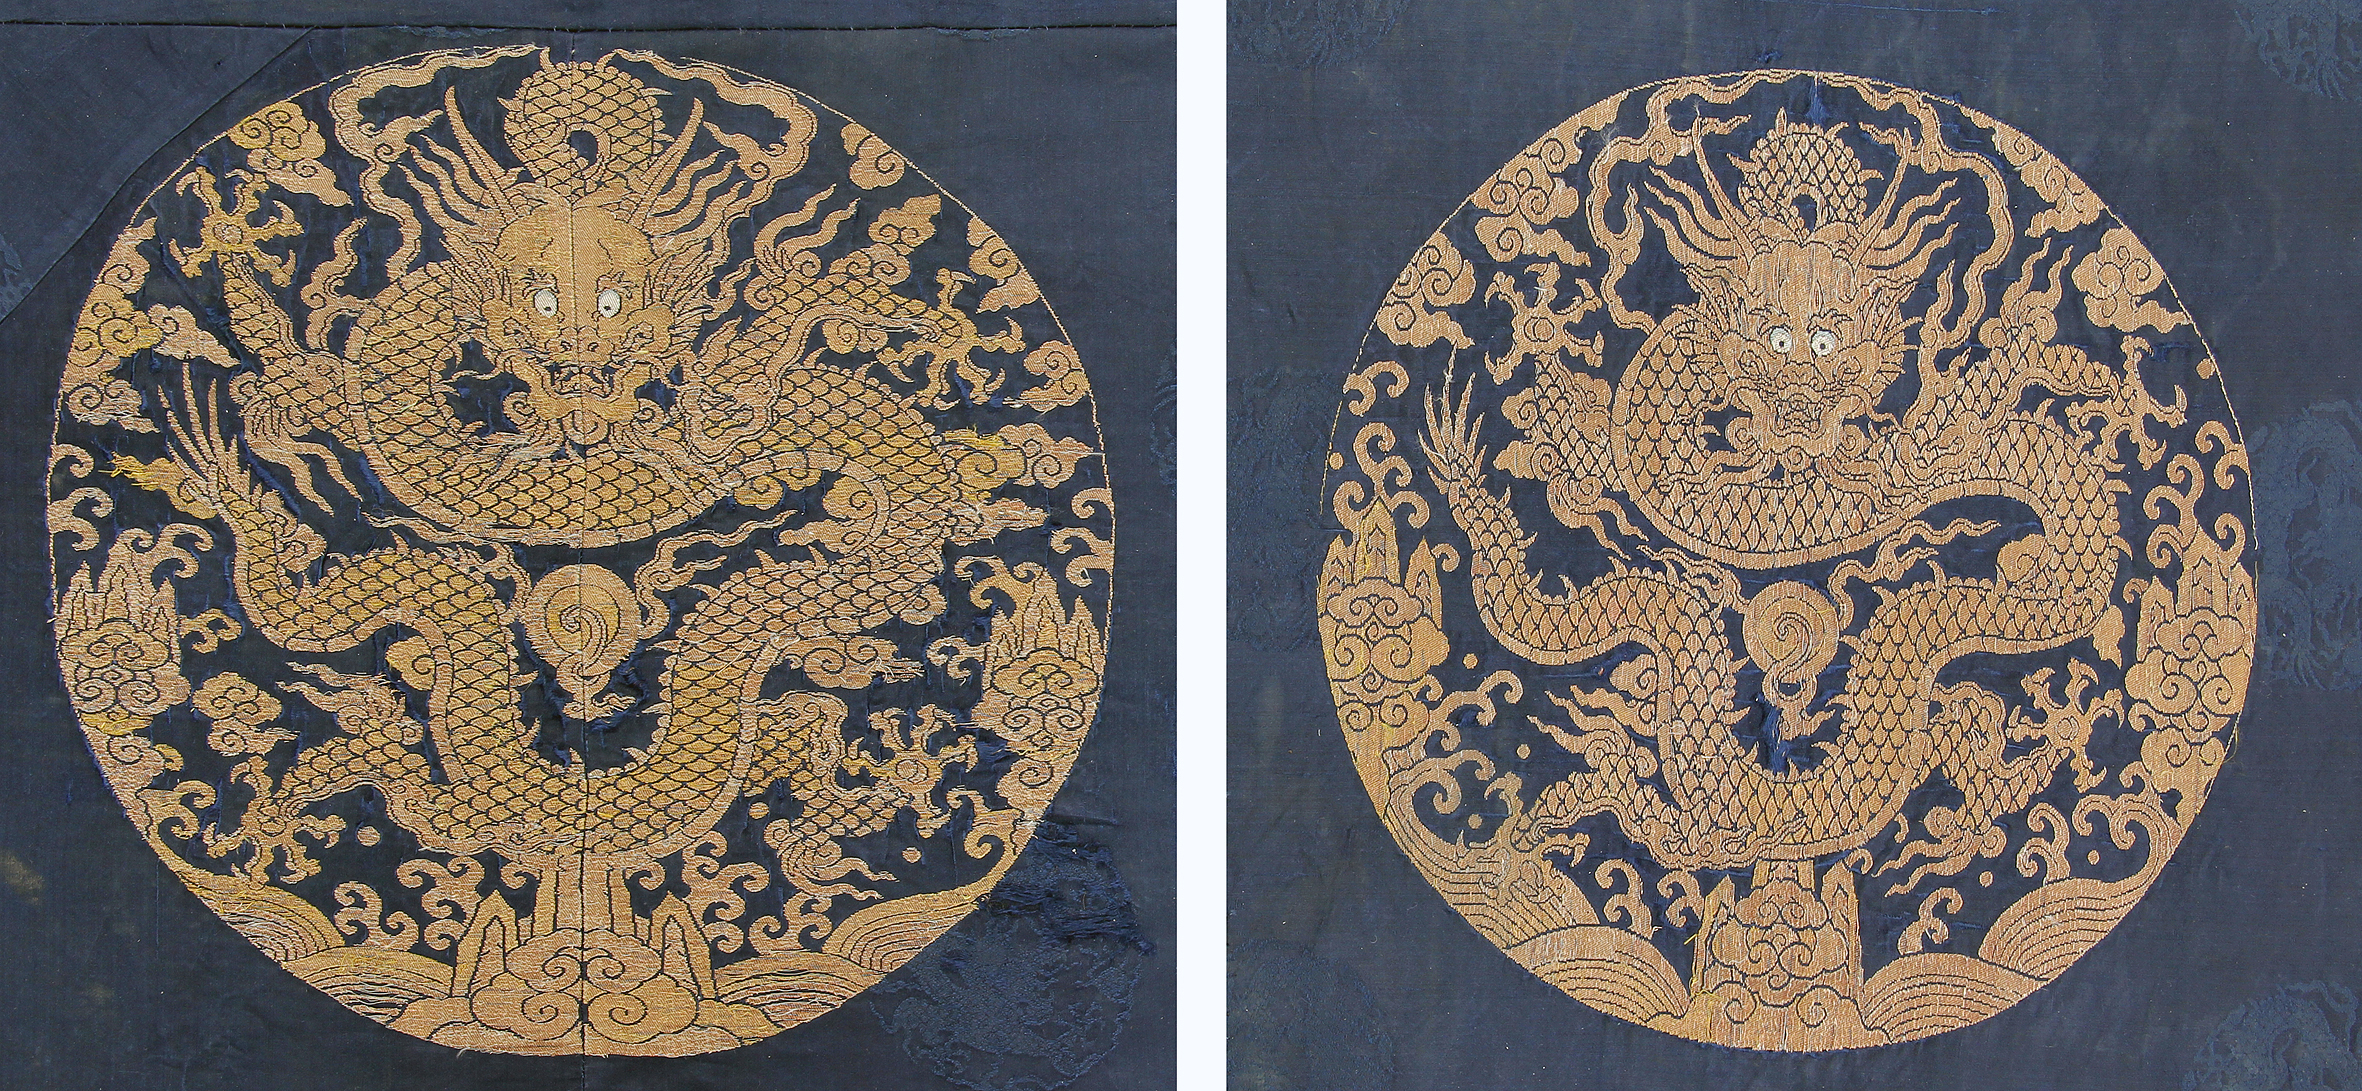 Imperial dragon roundels, 17th/18th century, China. Silk and gold thread. Galerie Arabesque, Stuttgart